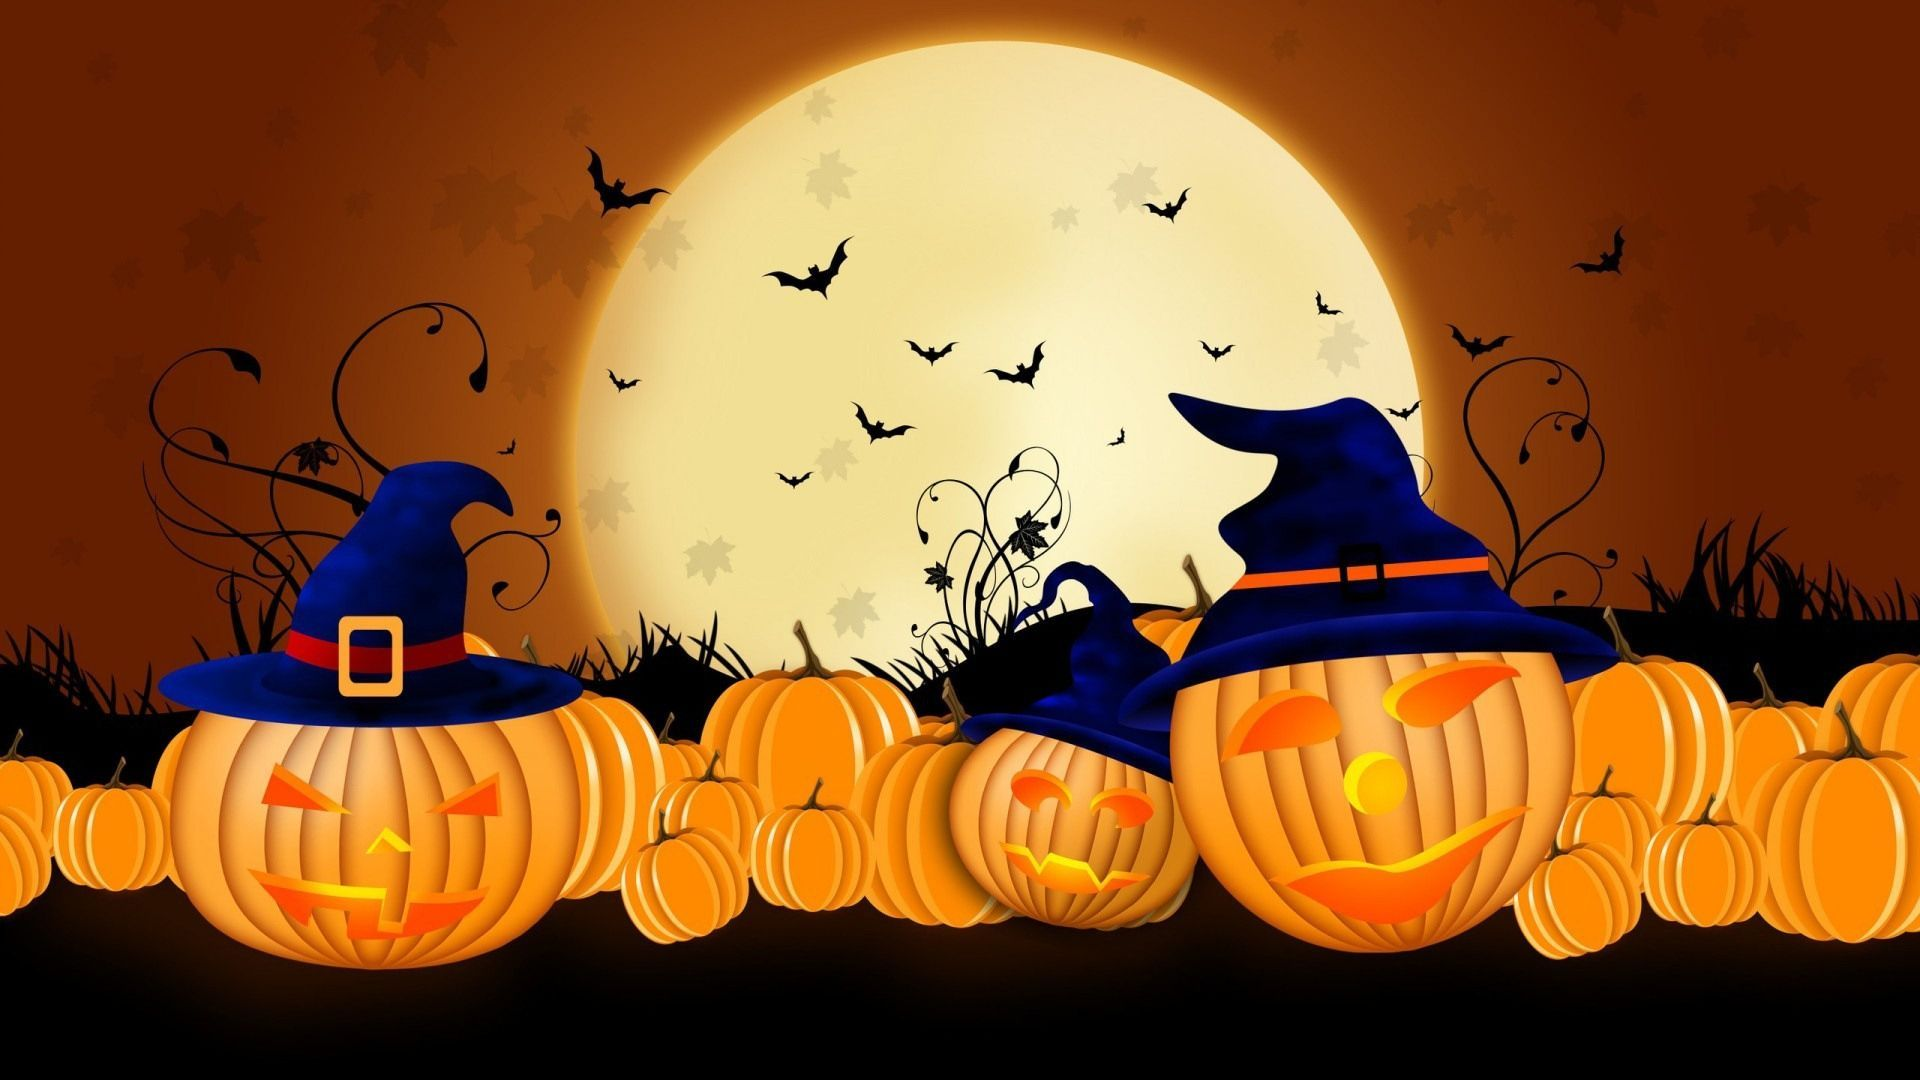 Halloween Backgrounds #halloweenbackgroundswallpapers Halloween Backgrounds #Halloween #Backgrounds #wallpaper #halloweenbackgroundswallpapers